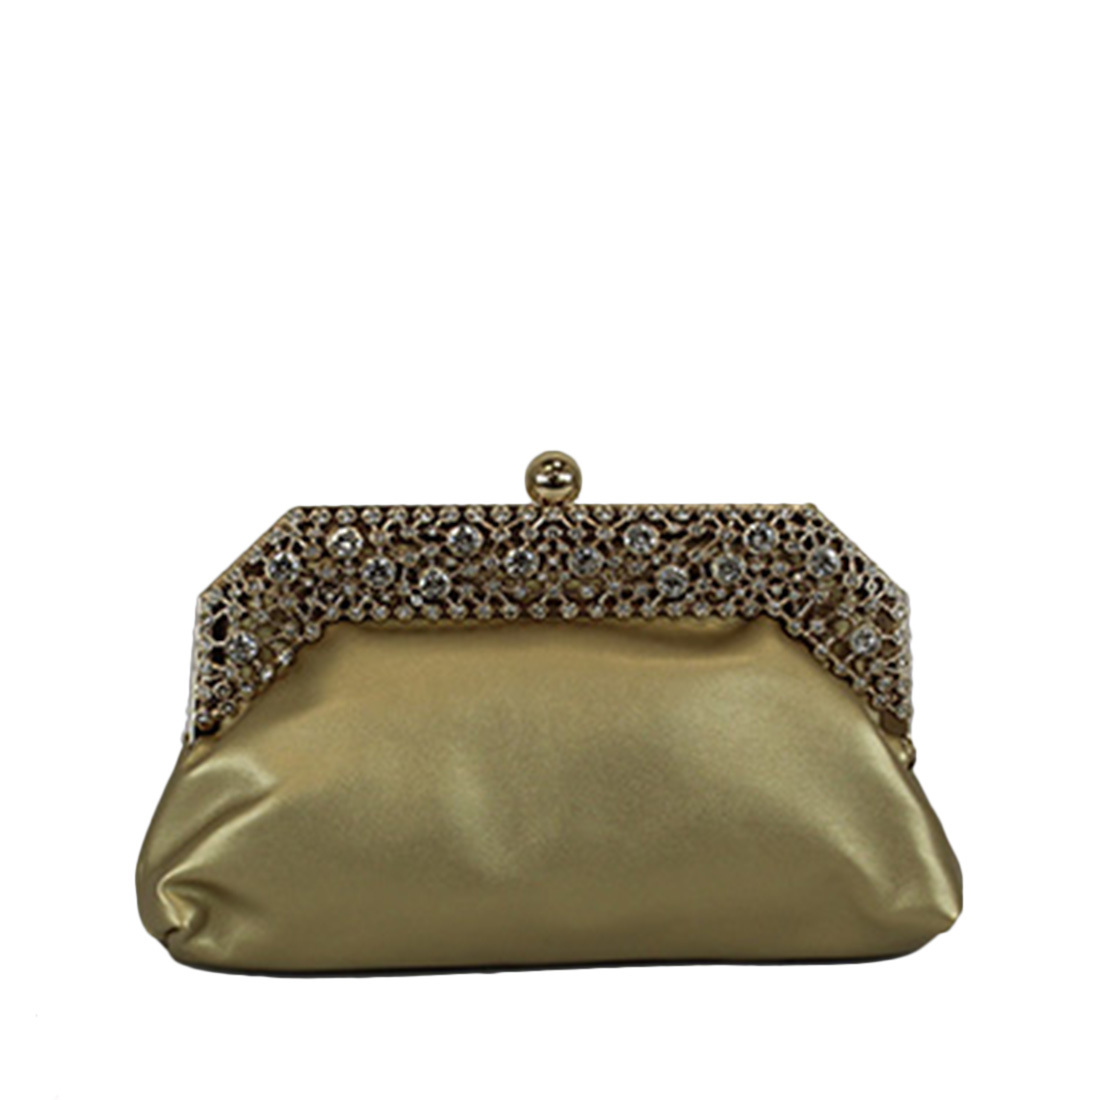 Clutch purse with decorative stones on top